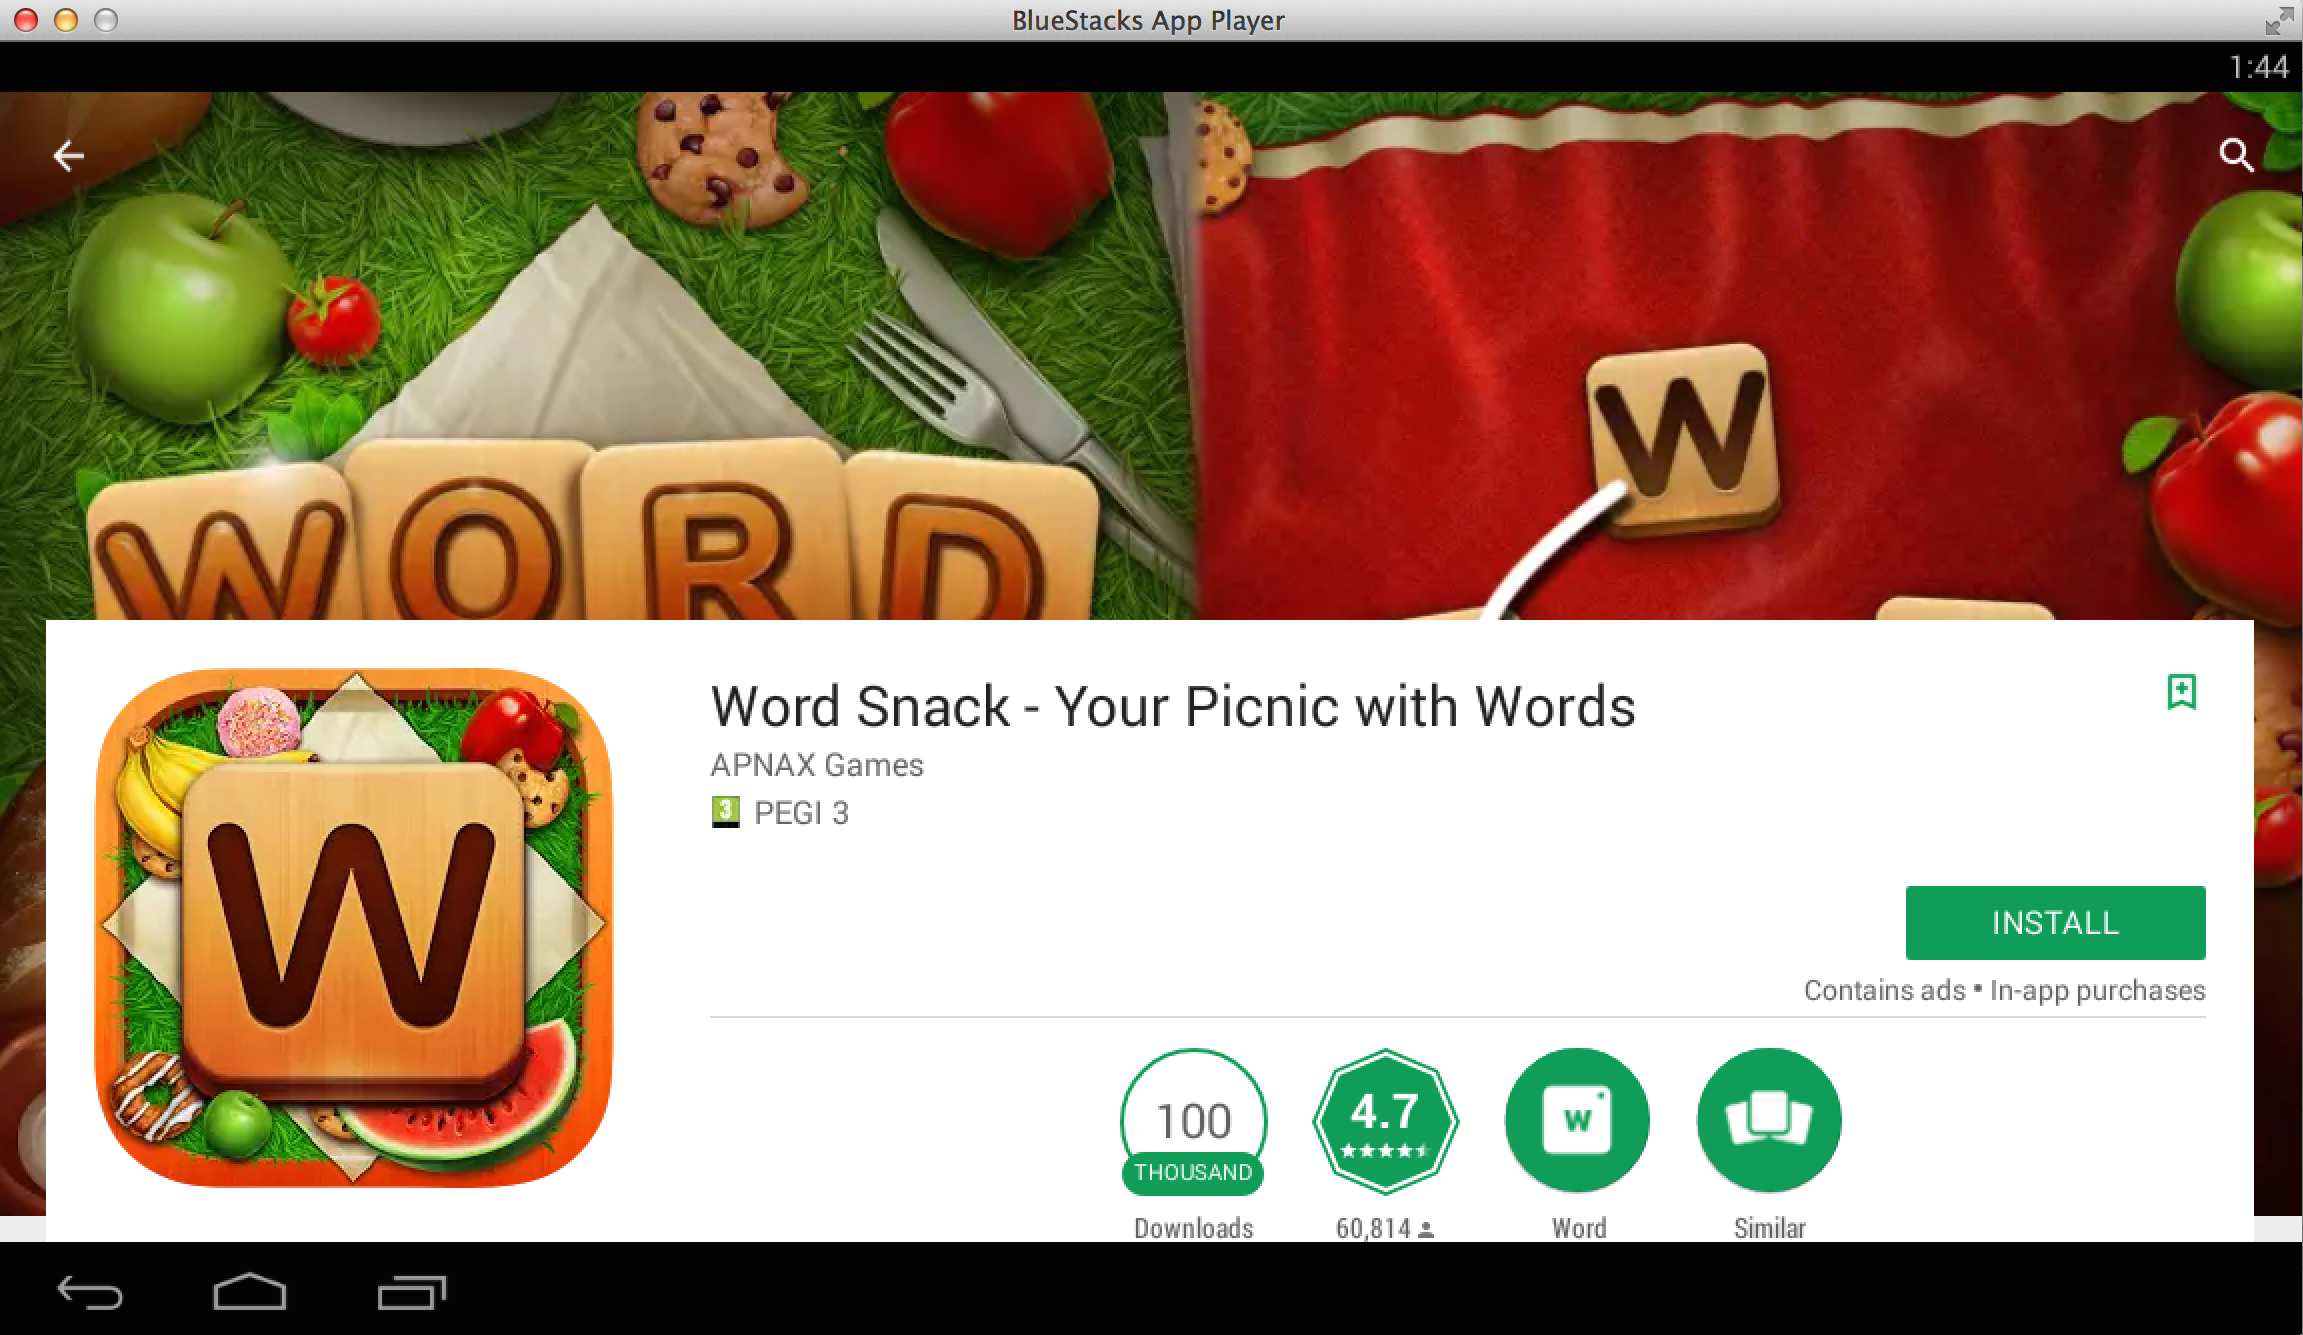 Stiahnite si Word Snack - Your Picnic with Words na PC 3